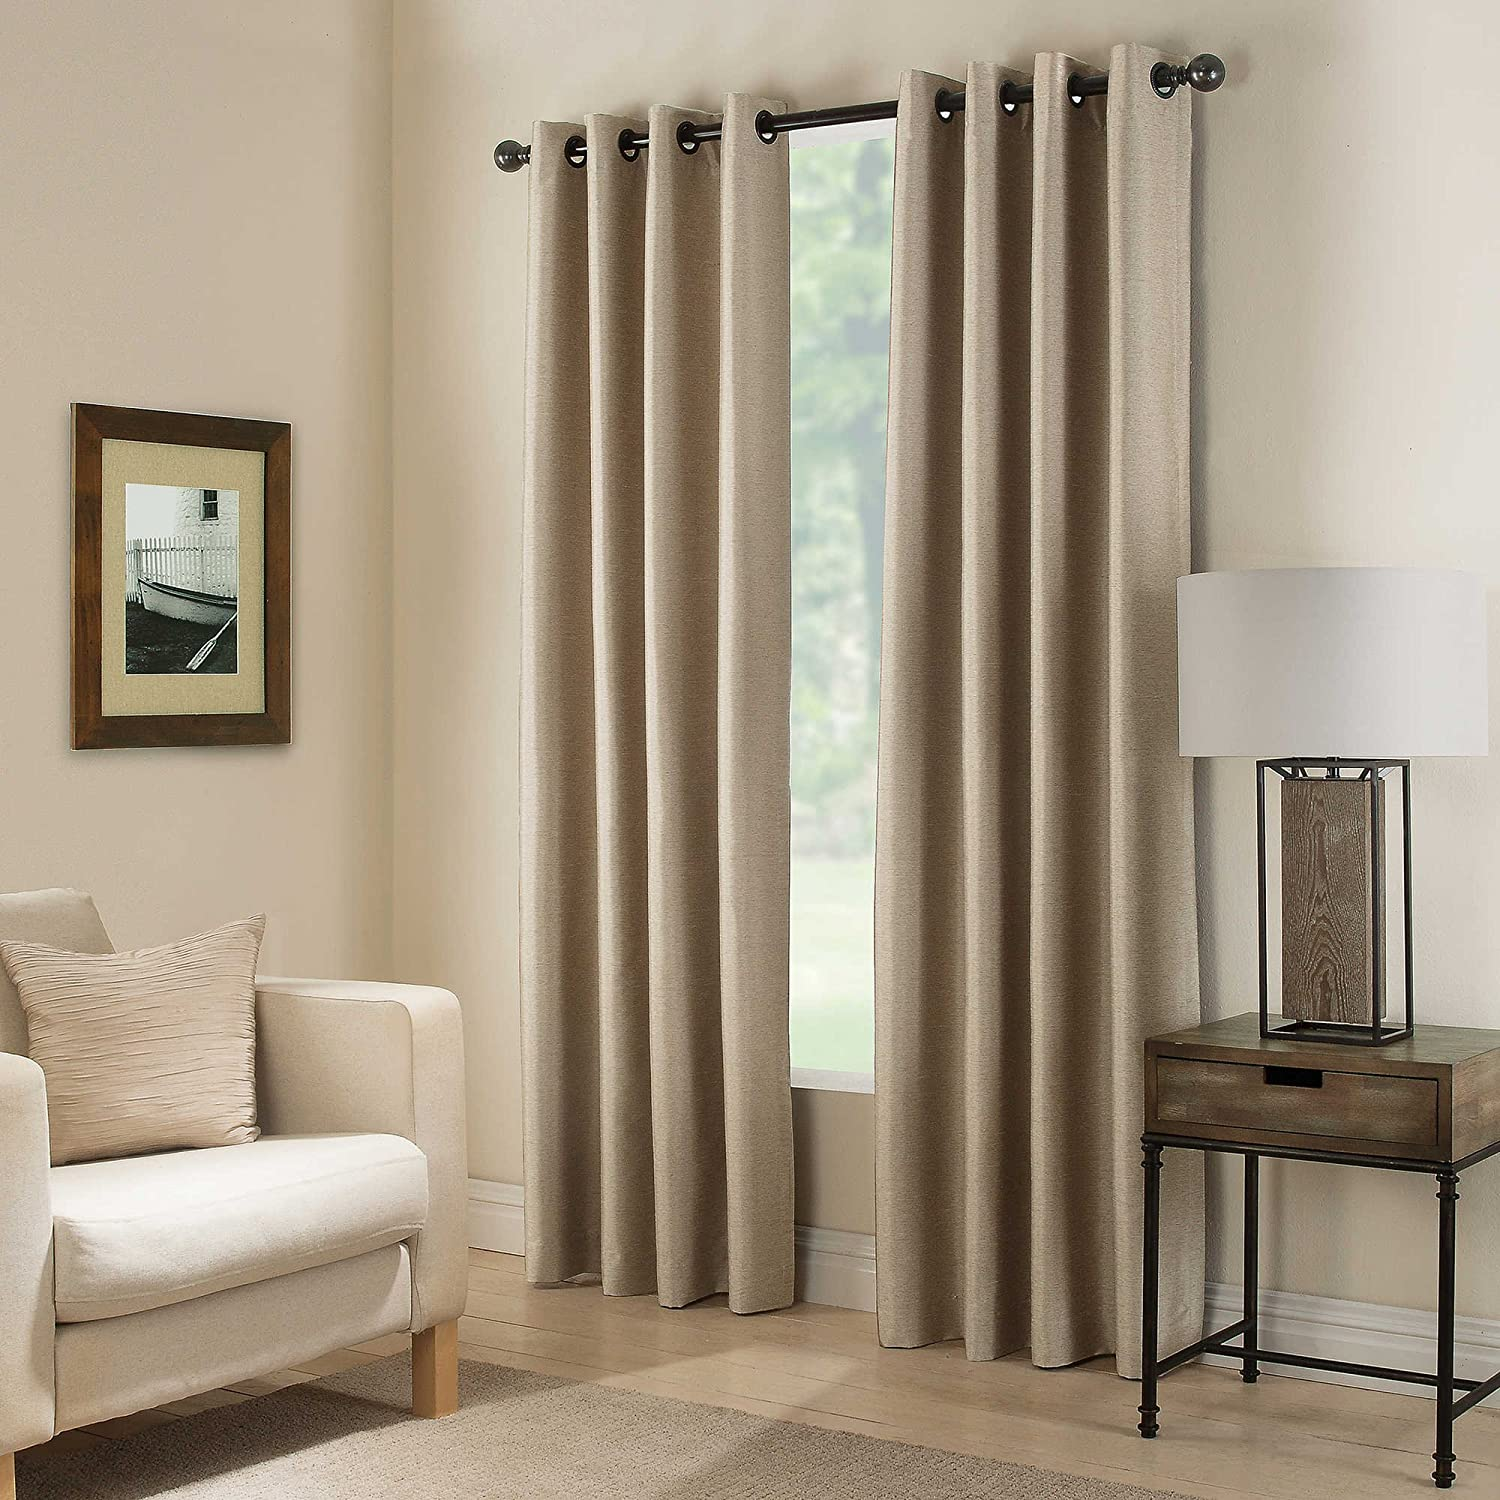 interior drapes for foam splendid futuristic home proof heavy soundproof portrait curtains bedroom material doors so reducing dampening soundproofing depot blocking sound